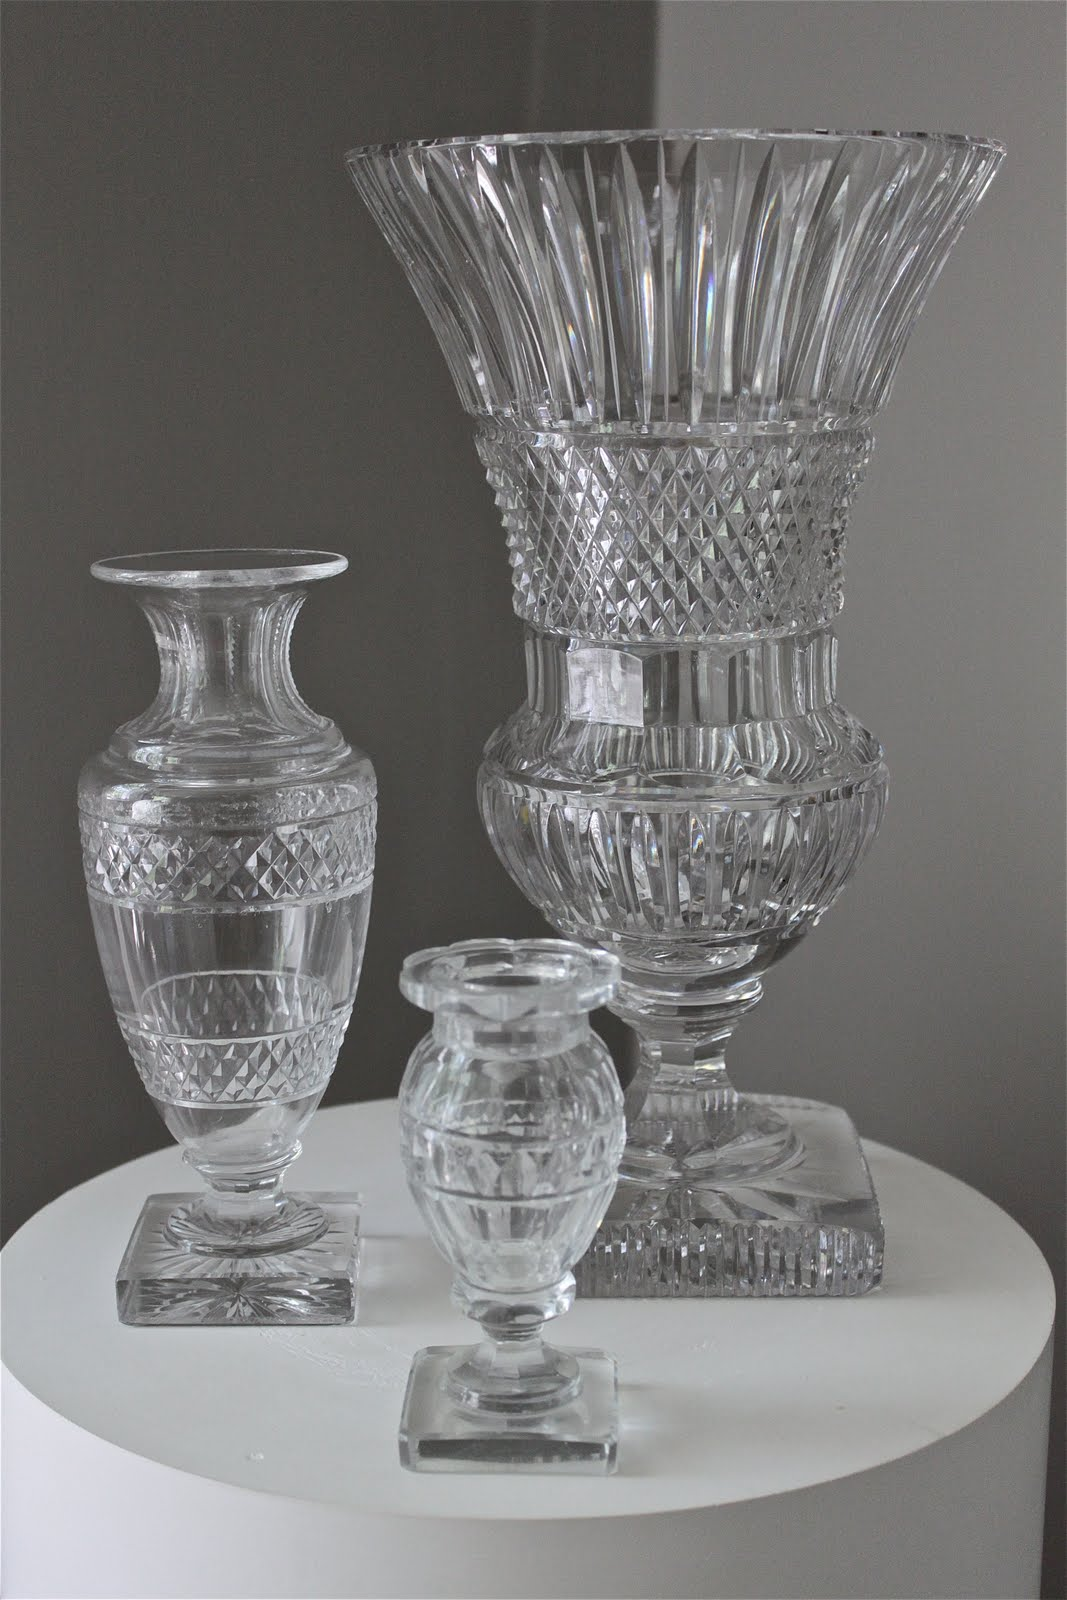 Reggie darling when is a vase a vahz which of these vases is a vahz reviewsmspy